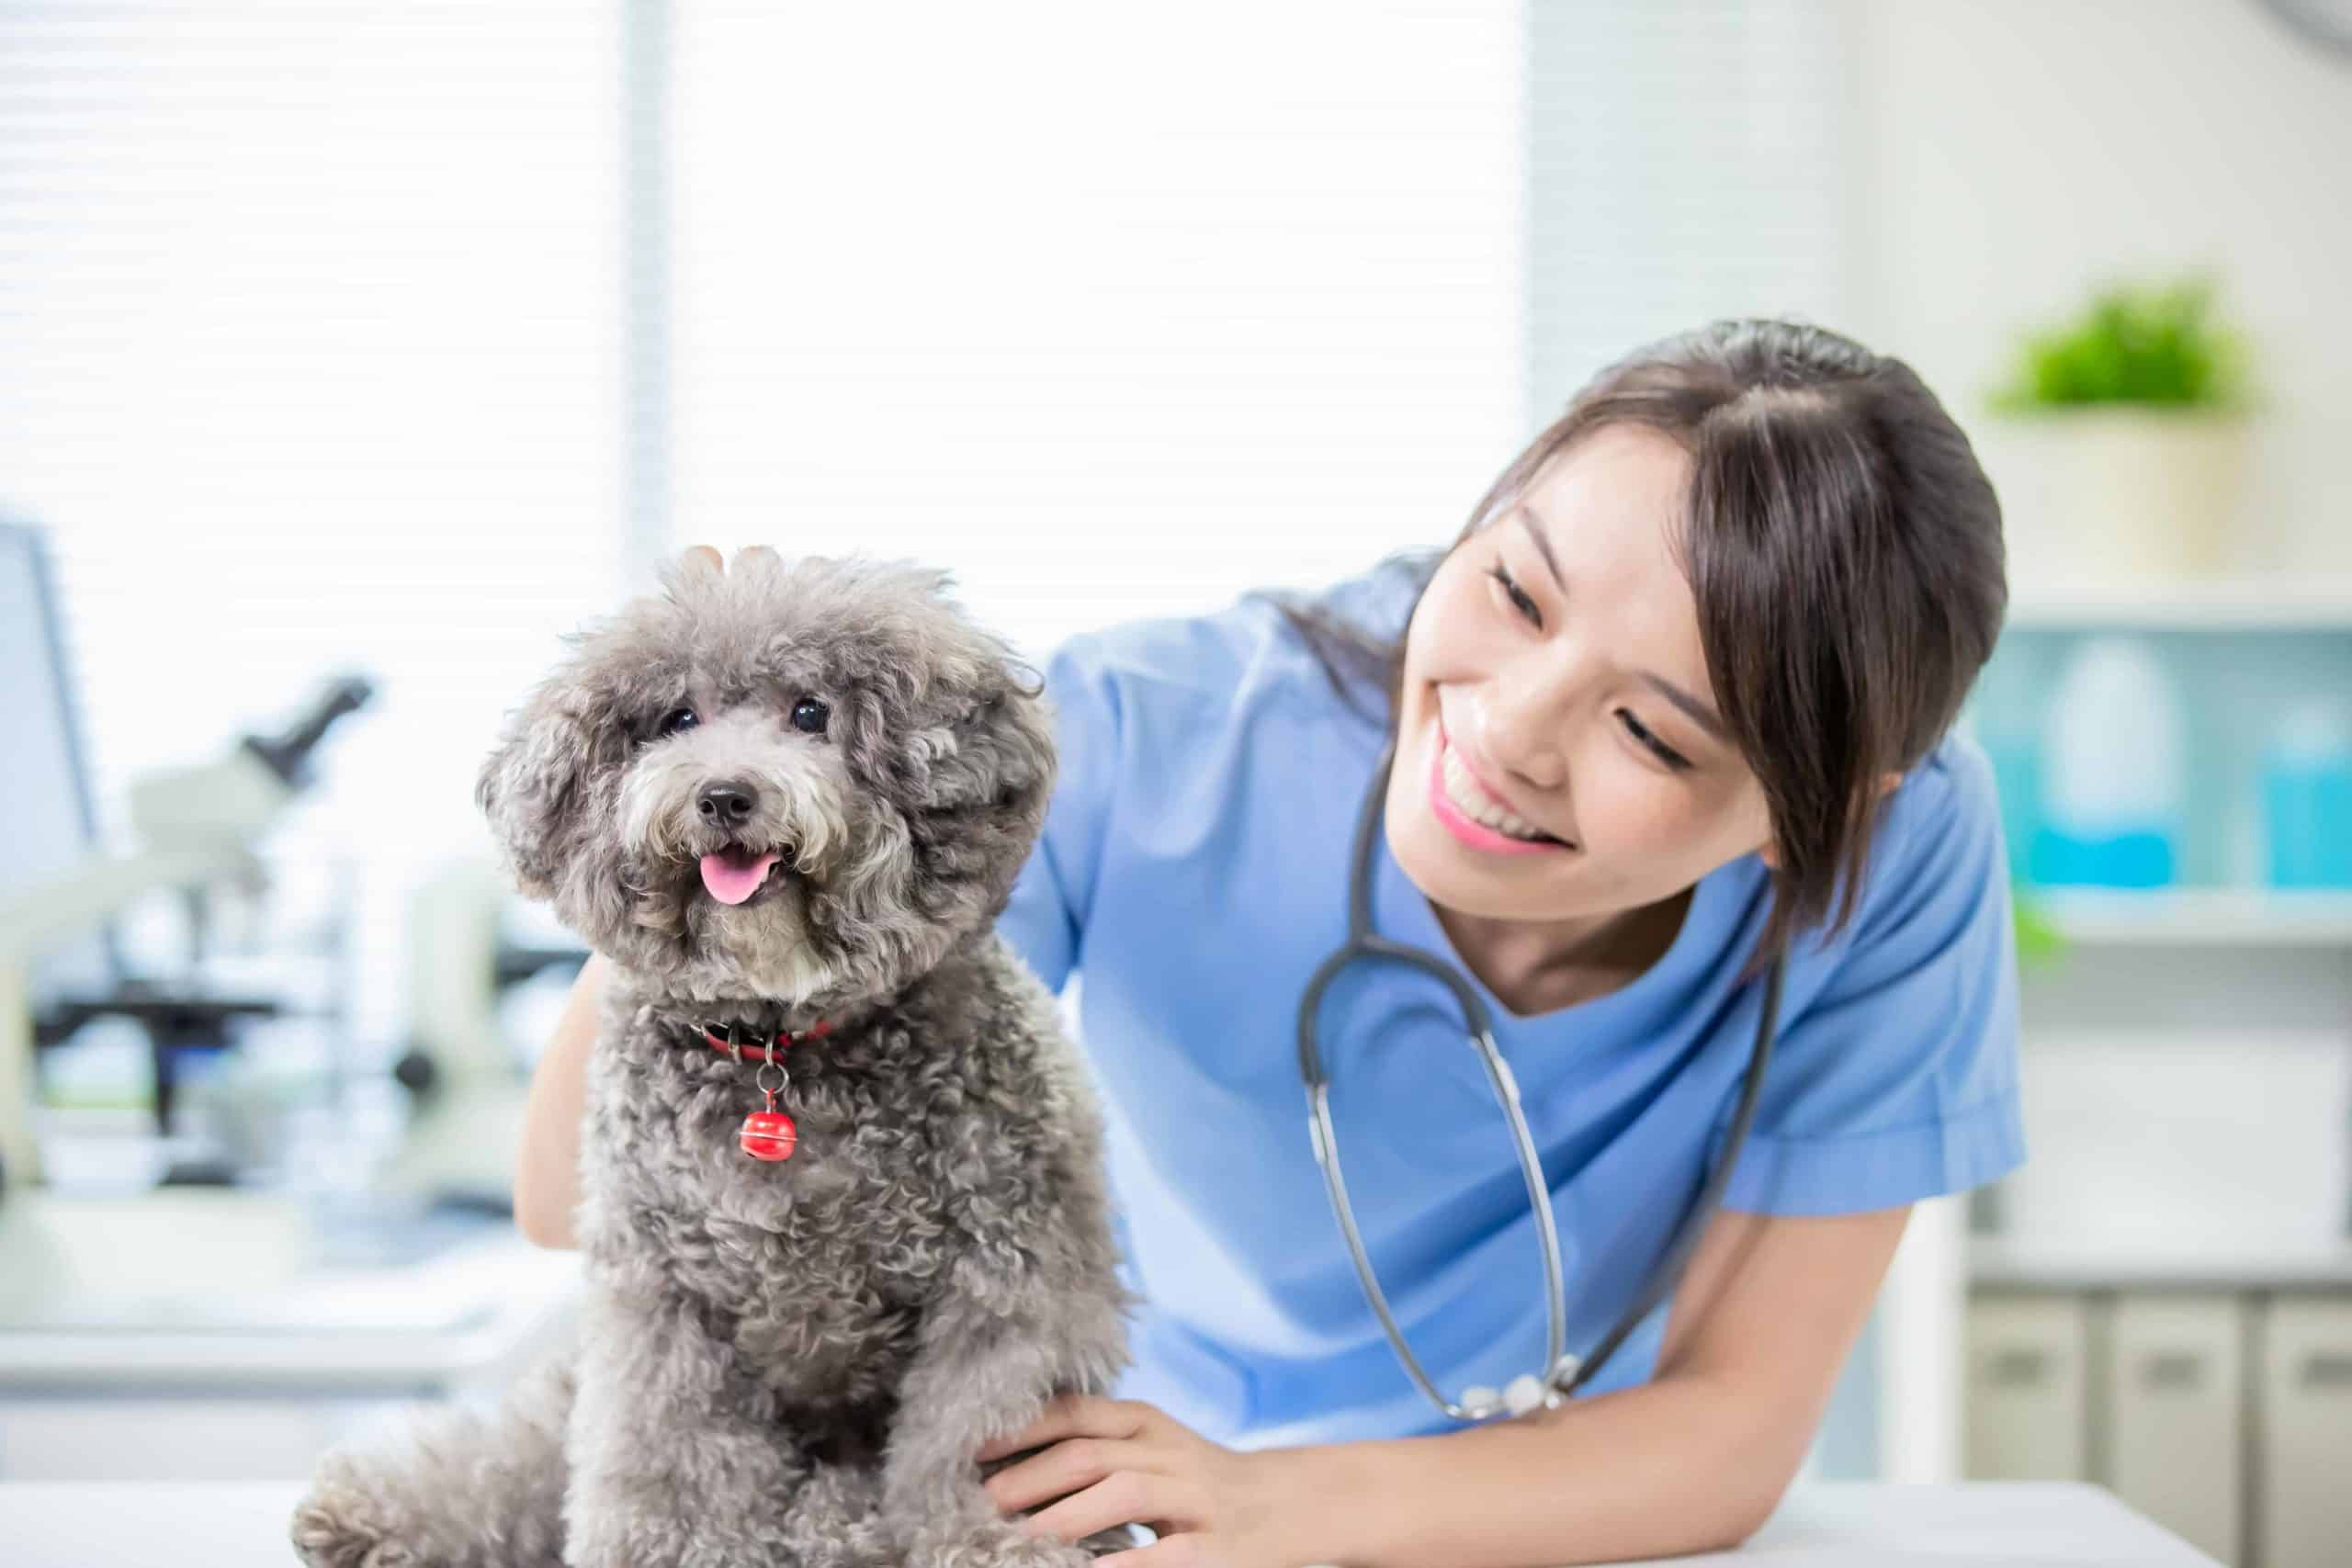 Veterinarian examines poodle. Vet visit fear: Modify the negative association by making vet visits a pleasurable experience for your dog. Find a new vet if needed.